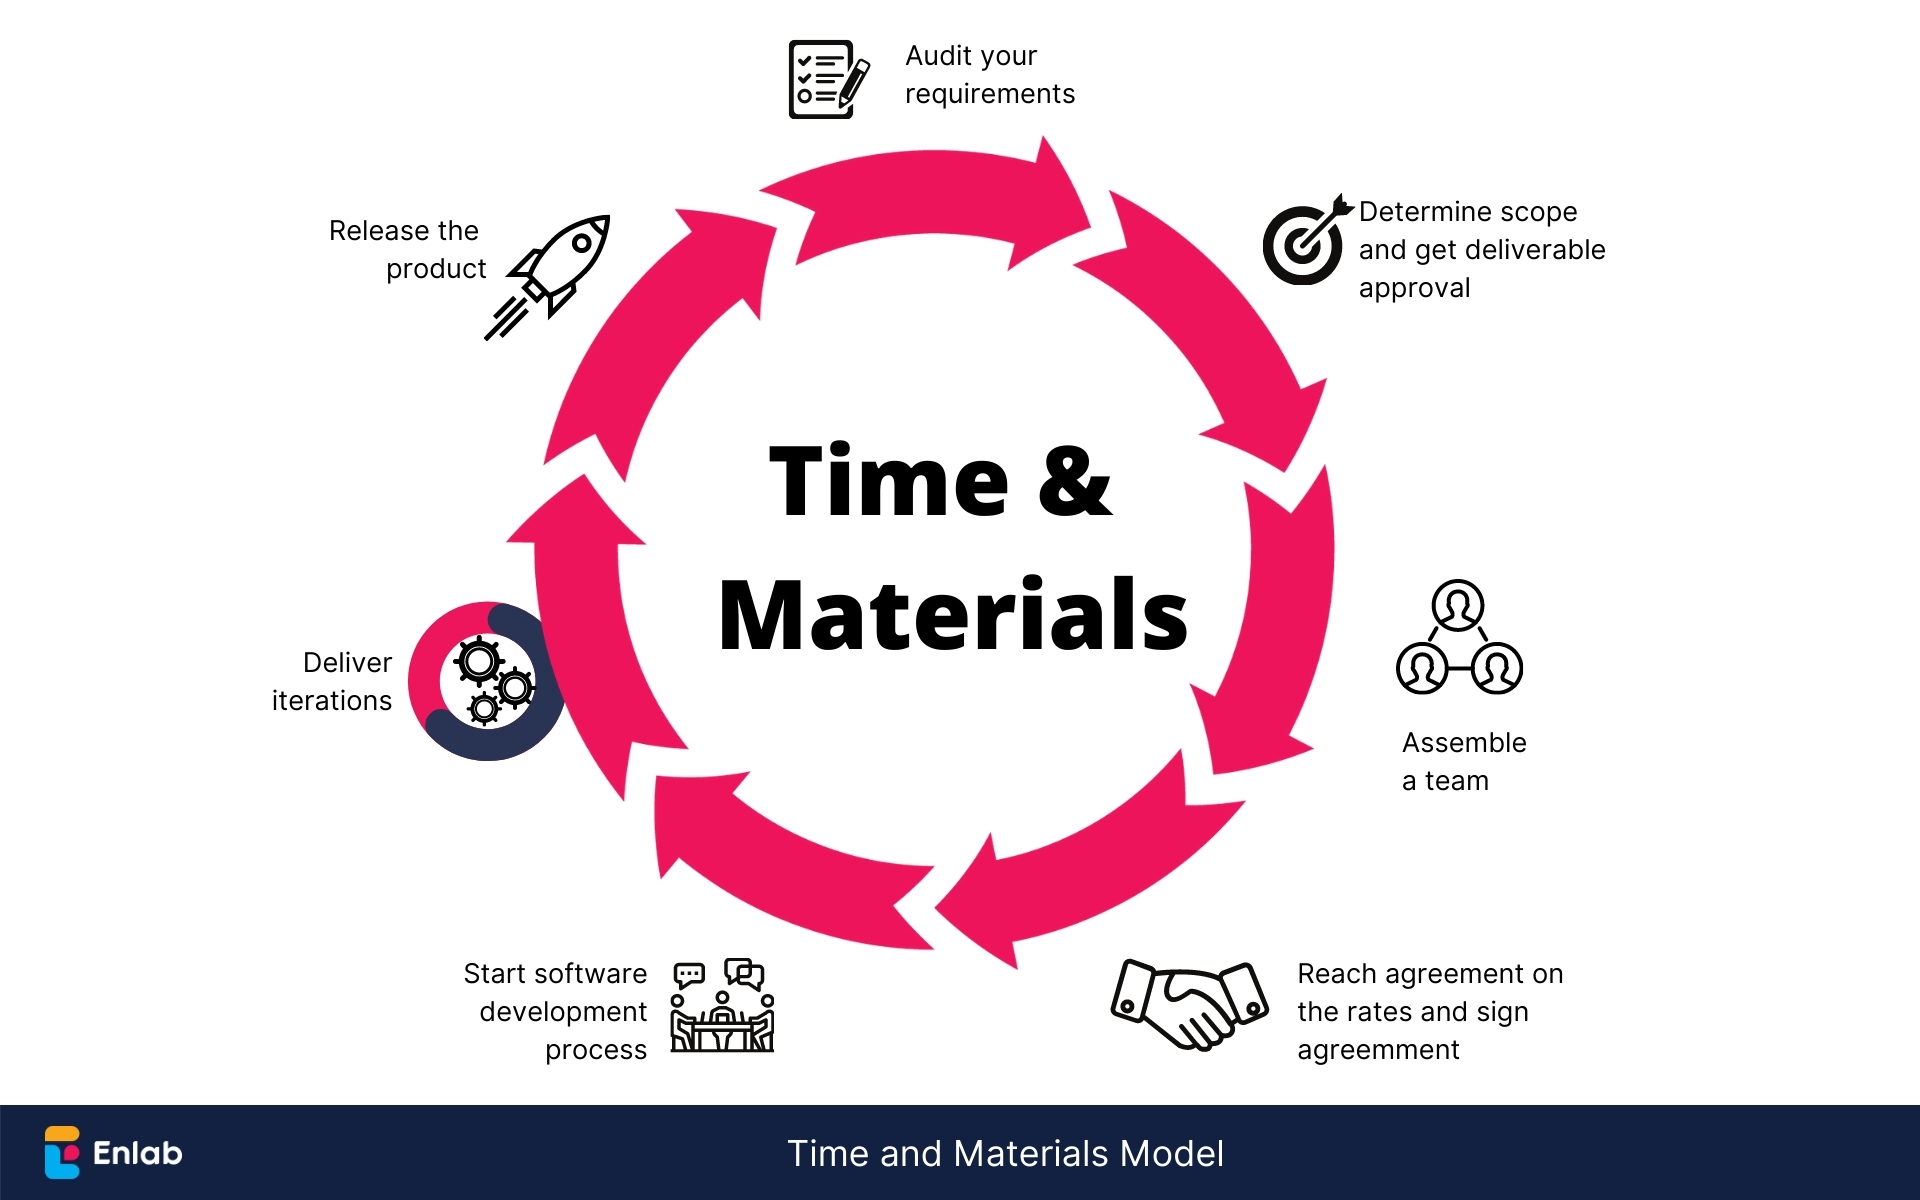 Time and Materials Outsourcing Models by Enlab